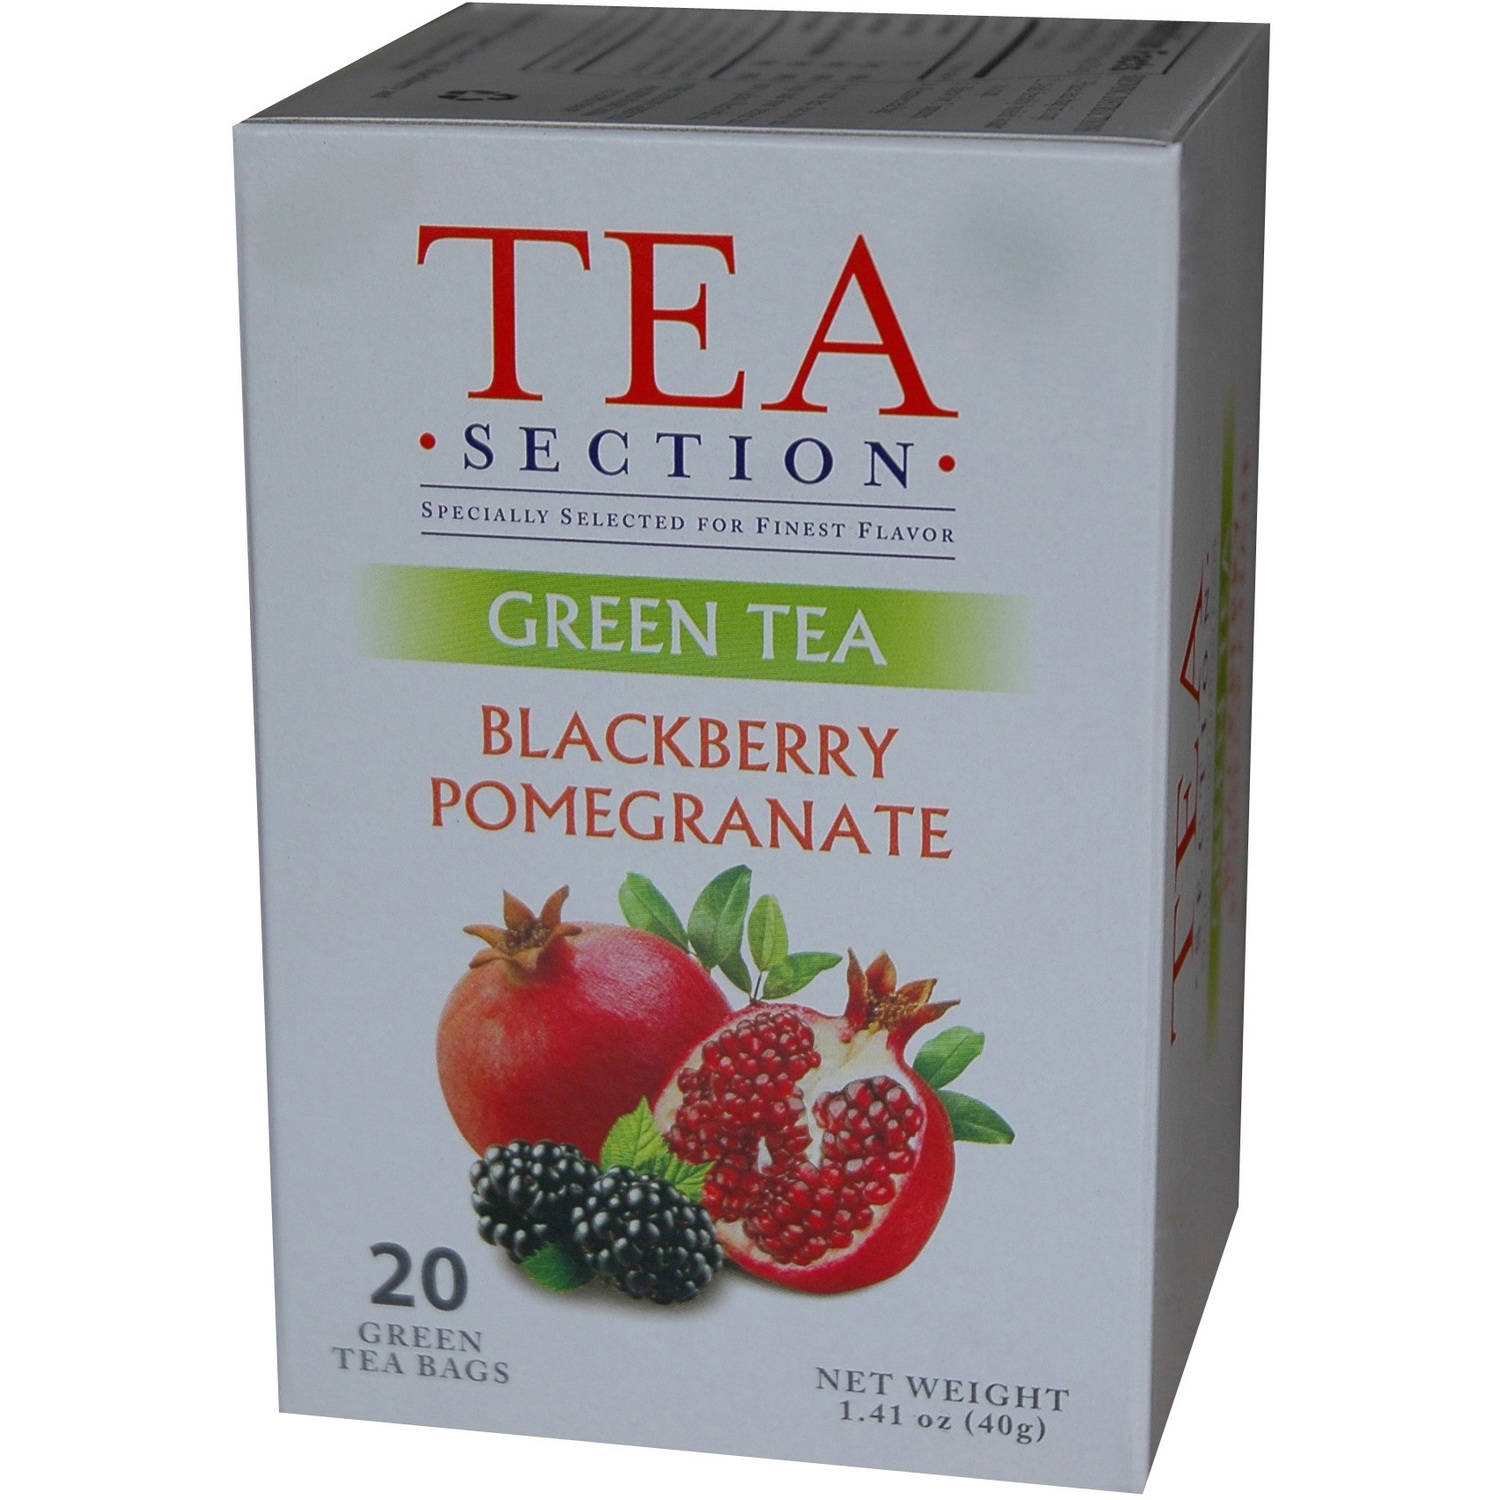 Tea Section Blackberry Pomegranate Green Tea Bags, 20 count